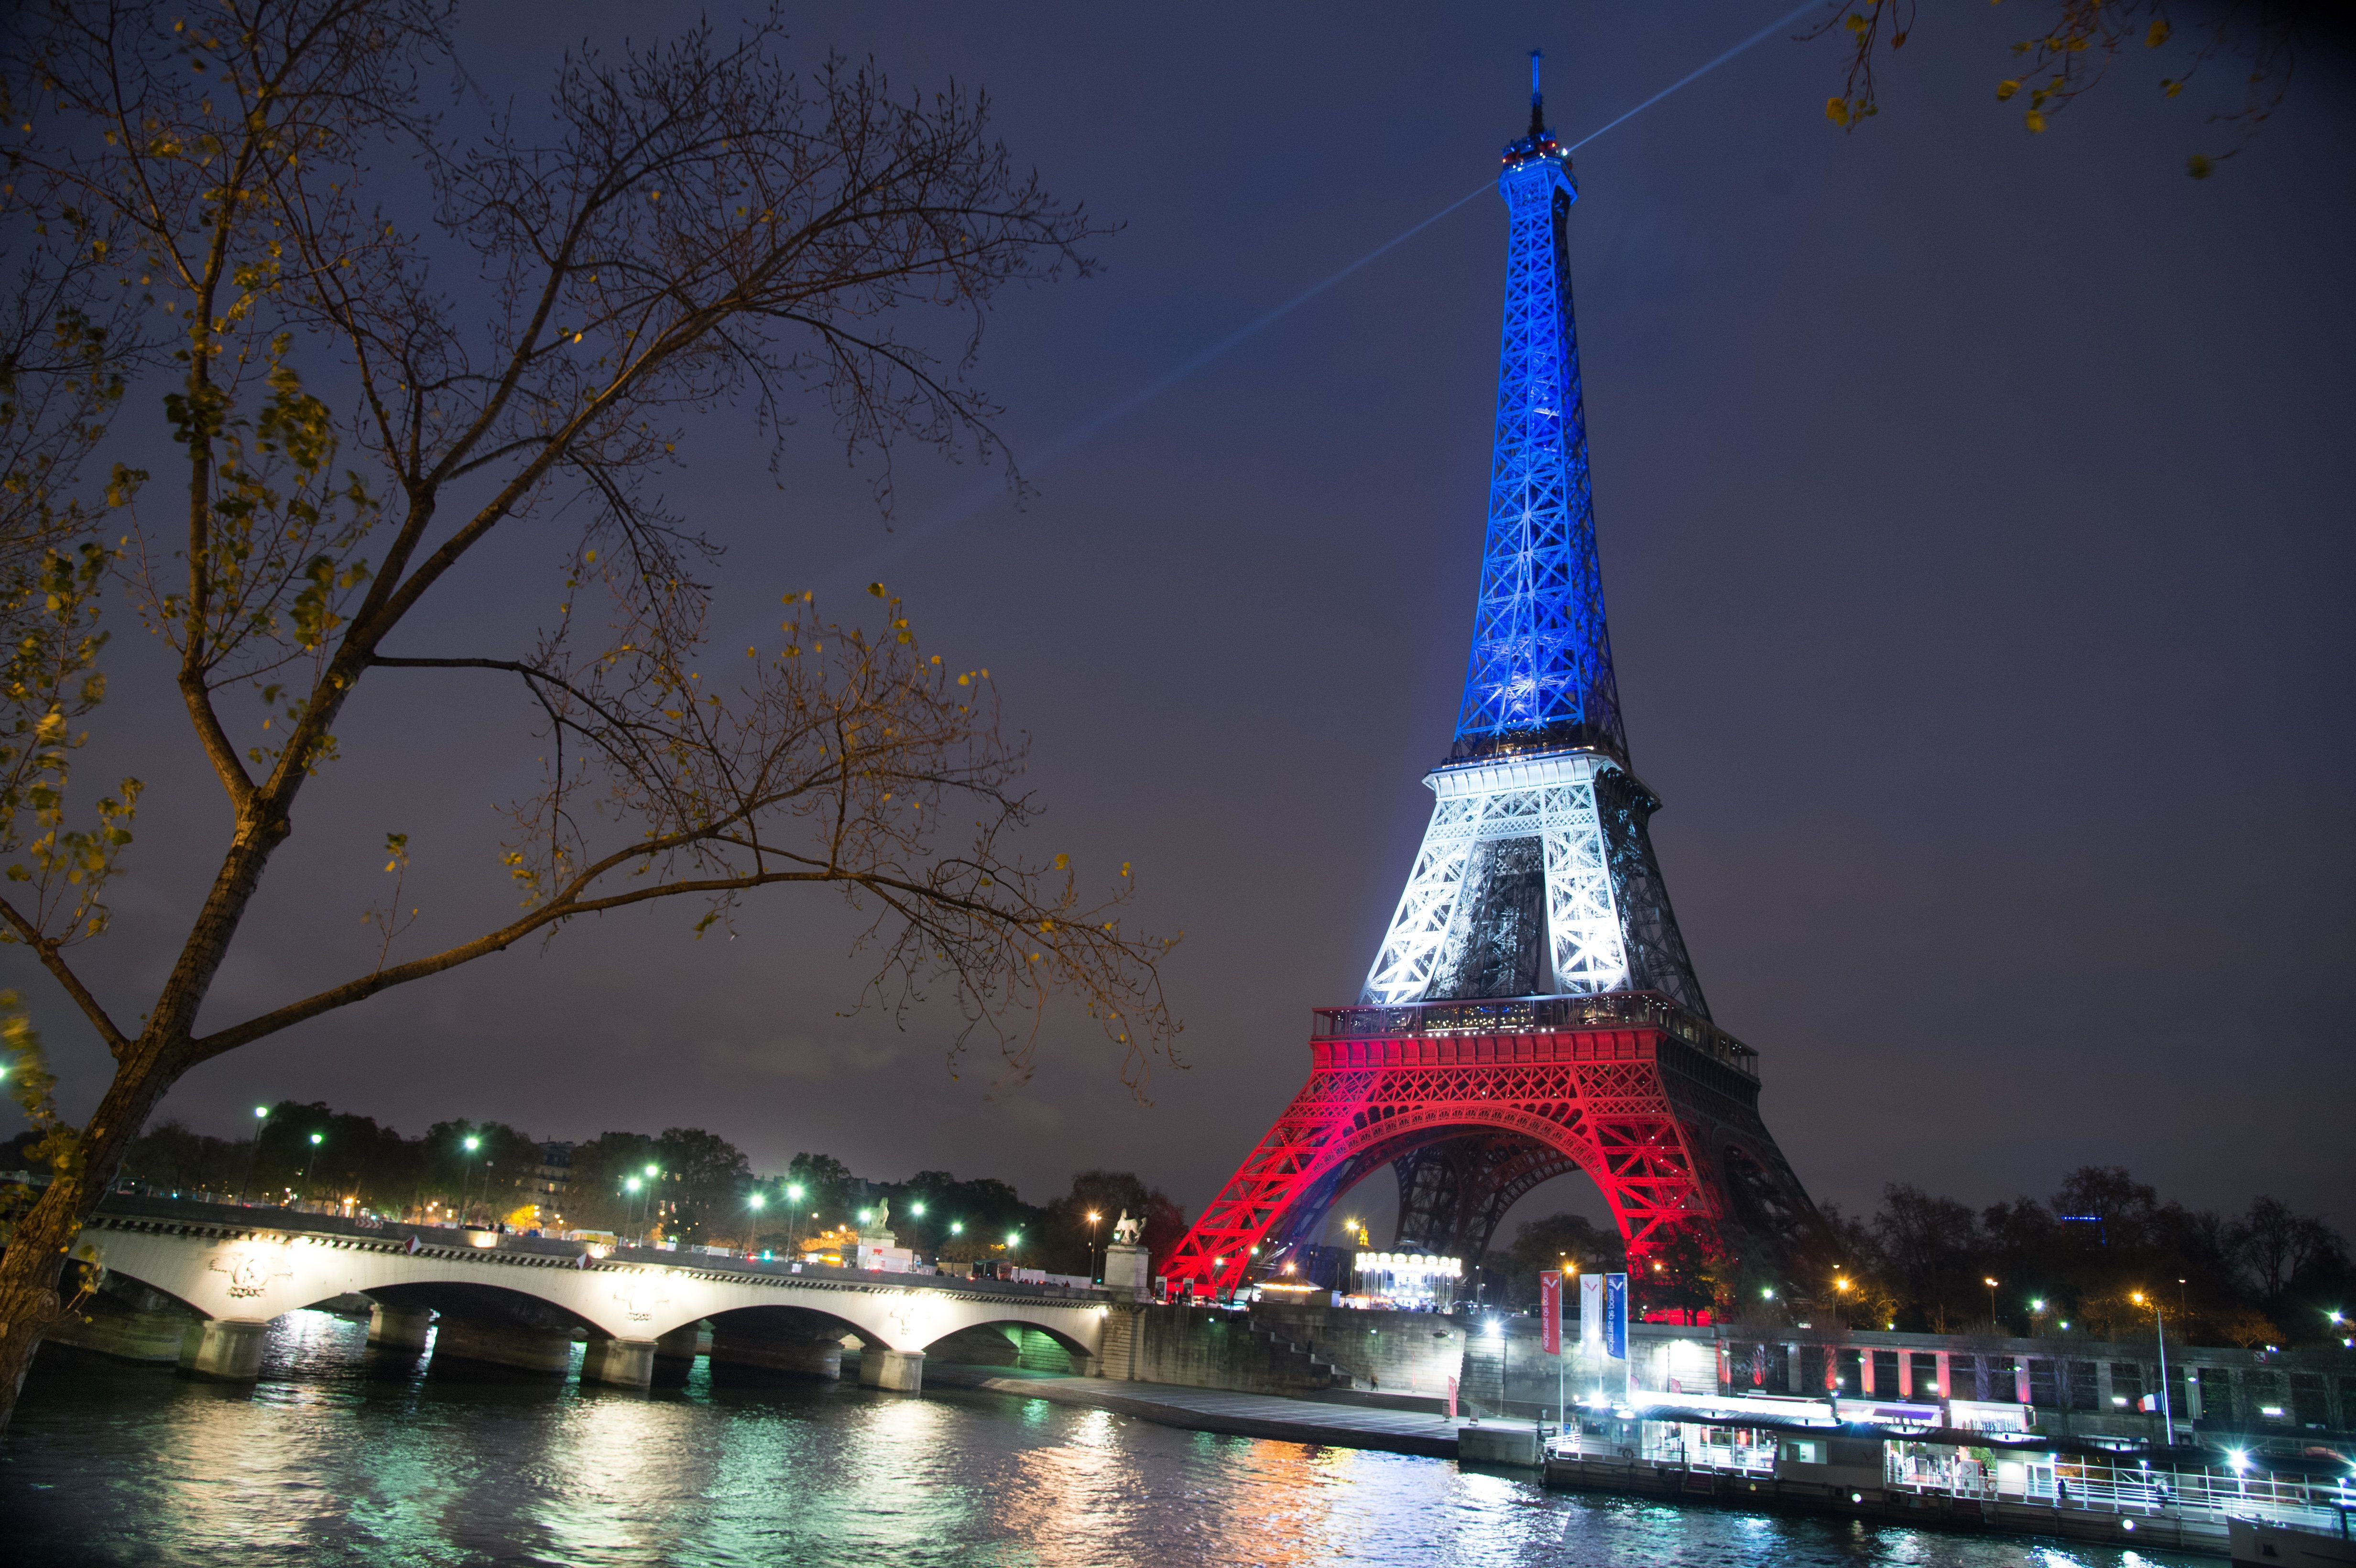 PARIS, FRANCE - NOVEMBER 16:  The Eiffel Tower is illuminated in Red, White and Blue in honour of the victims of Friday's terrorist attacks on November 16, 2015 in Paris, France. Countries across Europe joined France today to observe a one minute-silence in an expression of solidarity with the victims of the terrorist attacks, which left at least 129 people dead and hundreds more injured on November 16, 2015 in Paris, France.  (Photo by Thierry Orban/Getty Images)